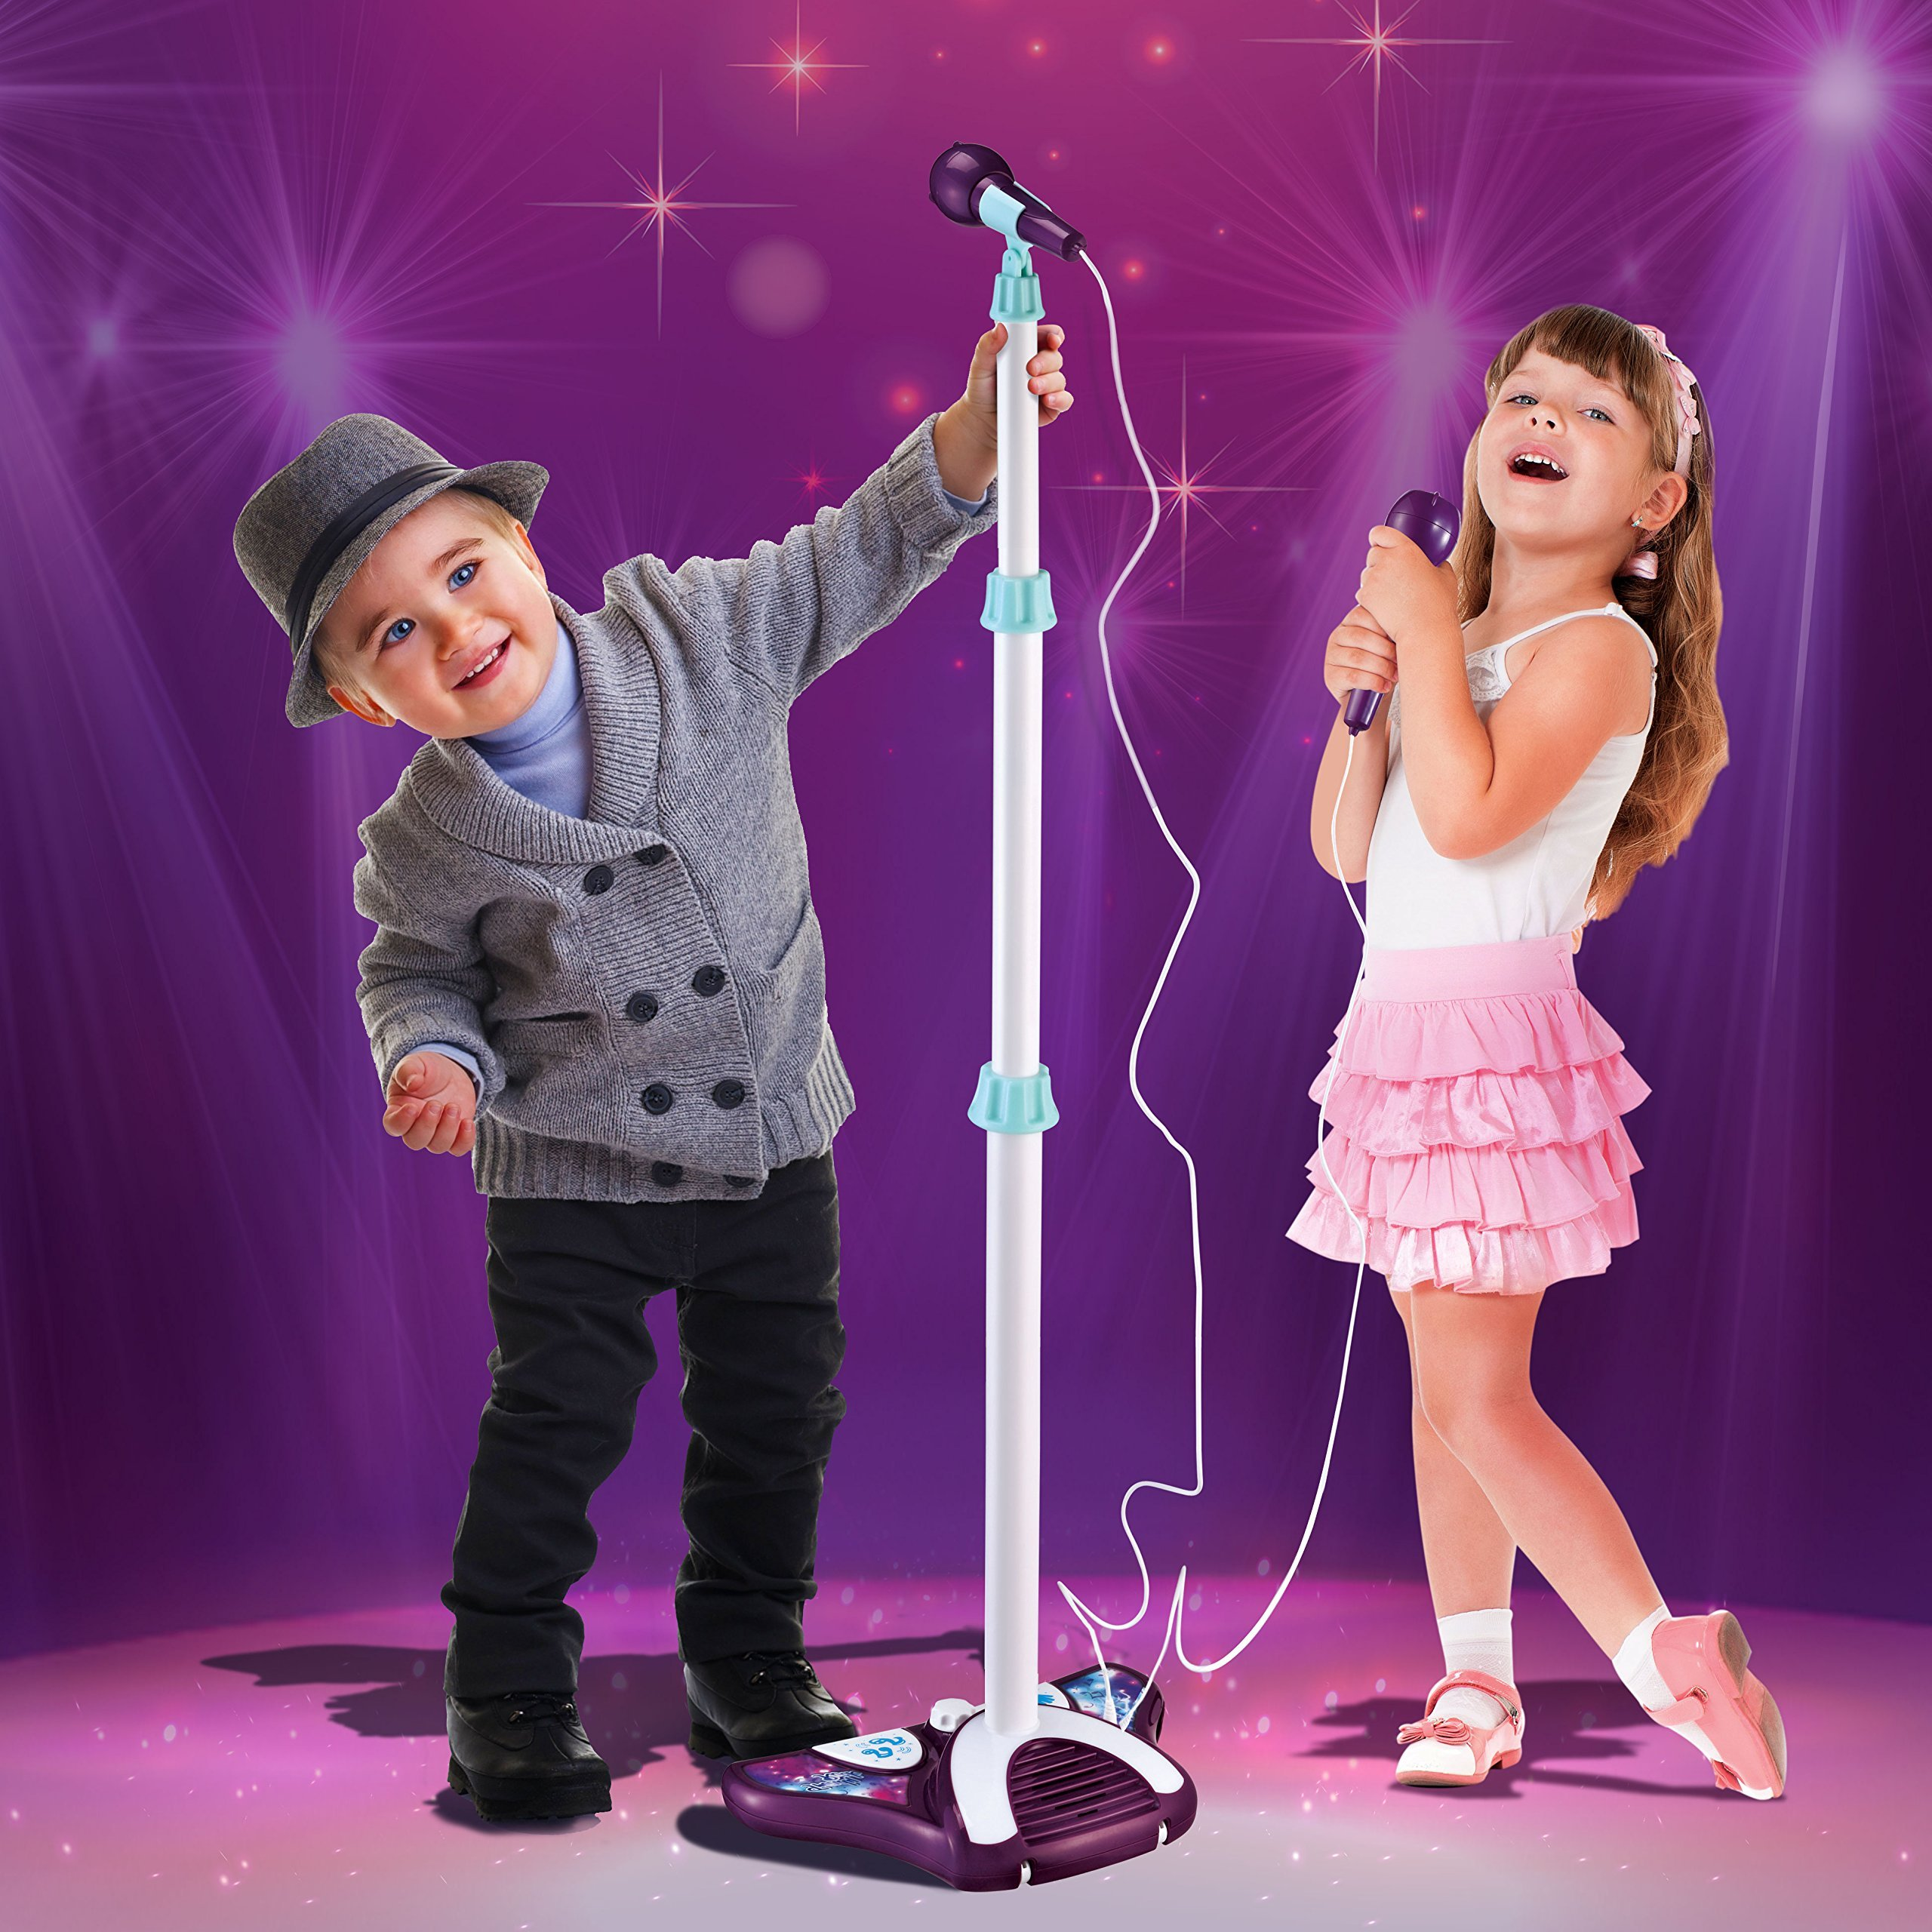 Little Pretender L P Kids Karaoke Machine with 2 Microphones and Adjustable Stand, Music Sing Along with Flashing Stage Lights and Pedals for Fun Musical Effects (Renewed) by ALMA (Image #2)